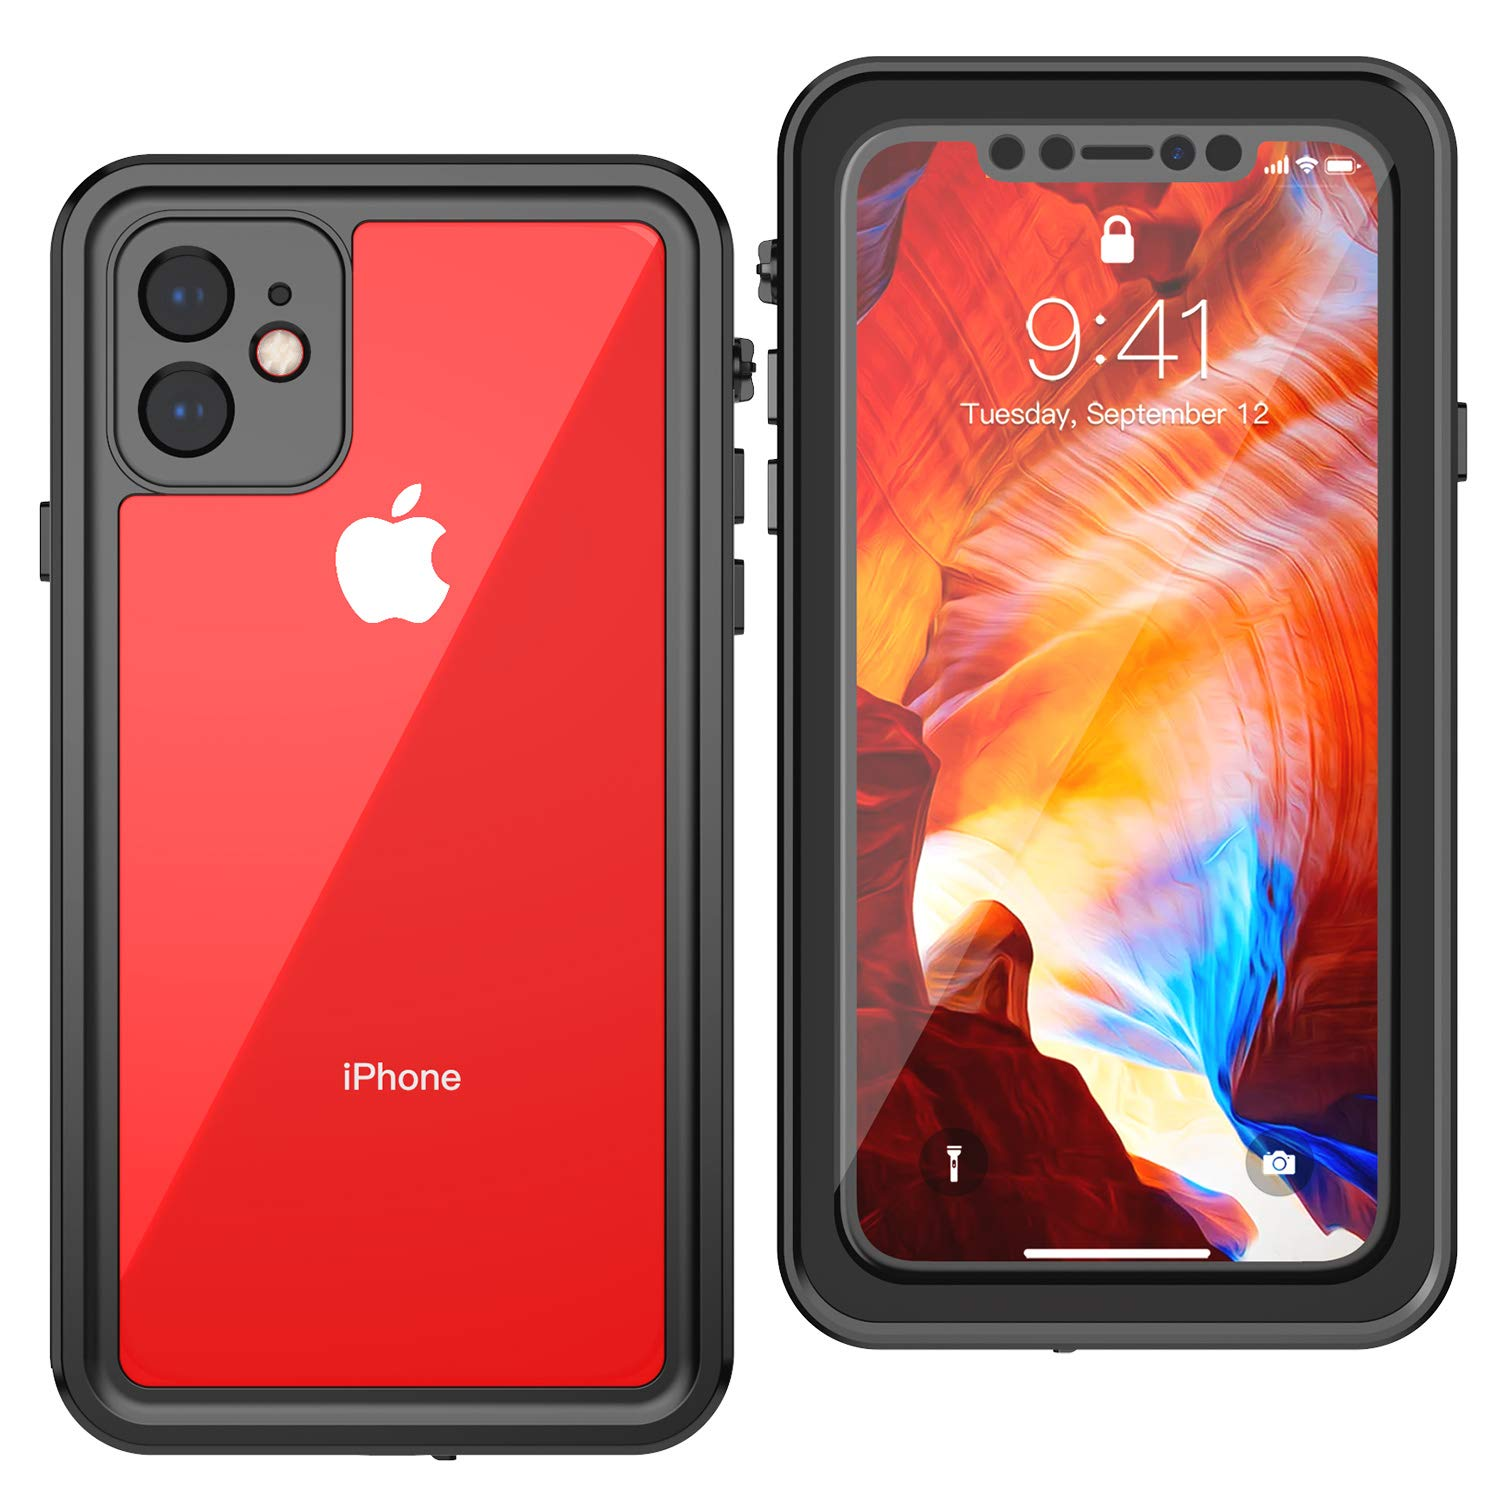 ALOFOX Designed for iPhone 11 Case, 360 Full-Body Built-in Screen Protector Real Heavy Duty Rugged Shockproof Dustproof Case for iPhone 11 (2019) 6.1 inch (Black/Clear)